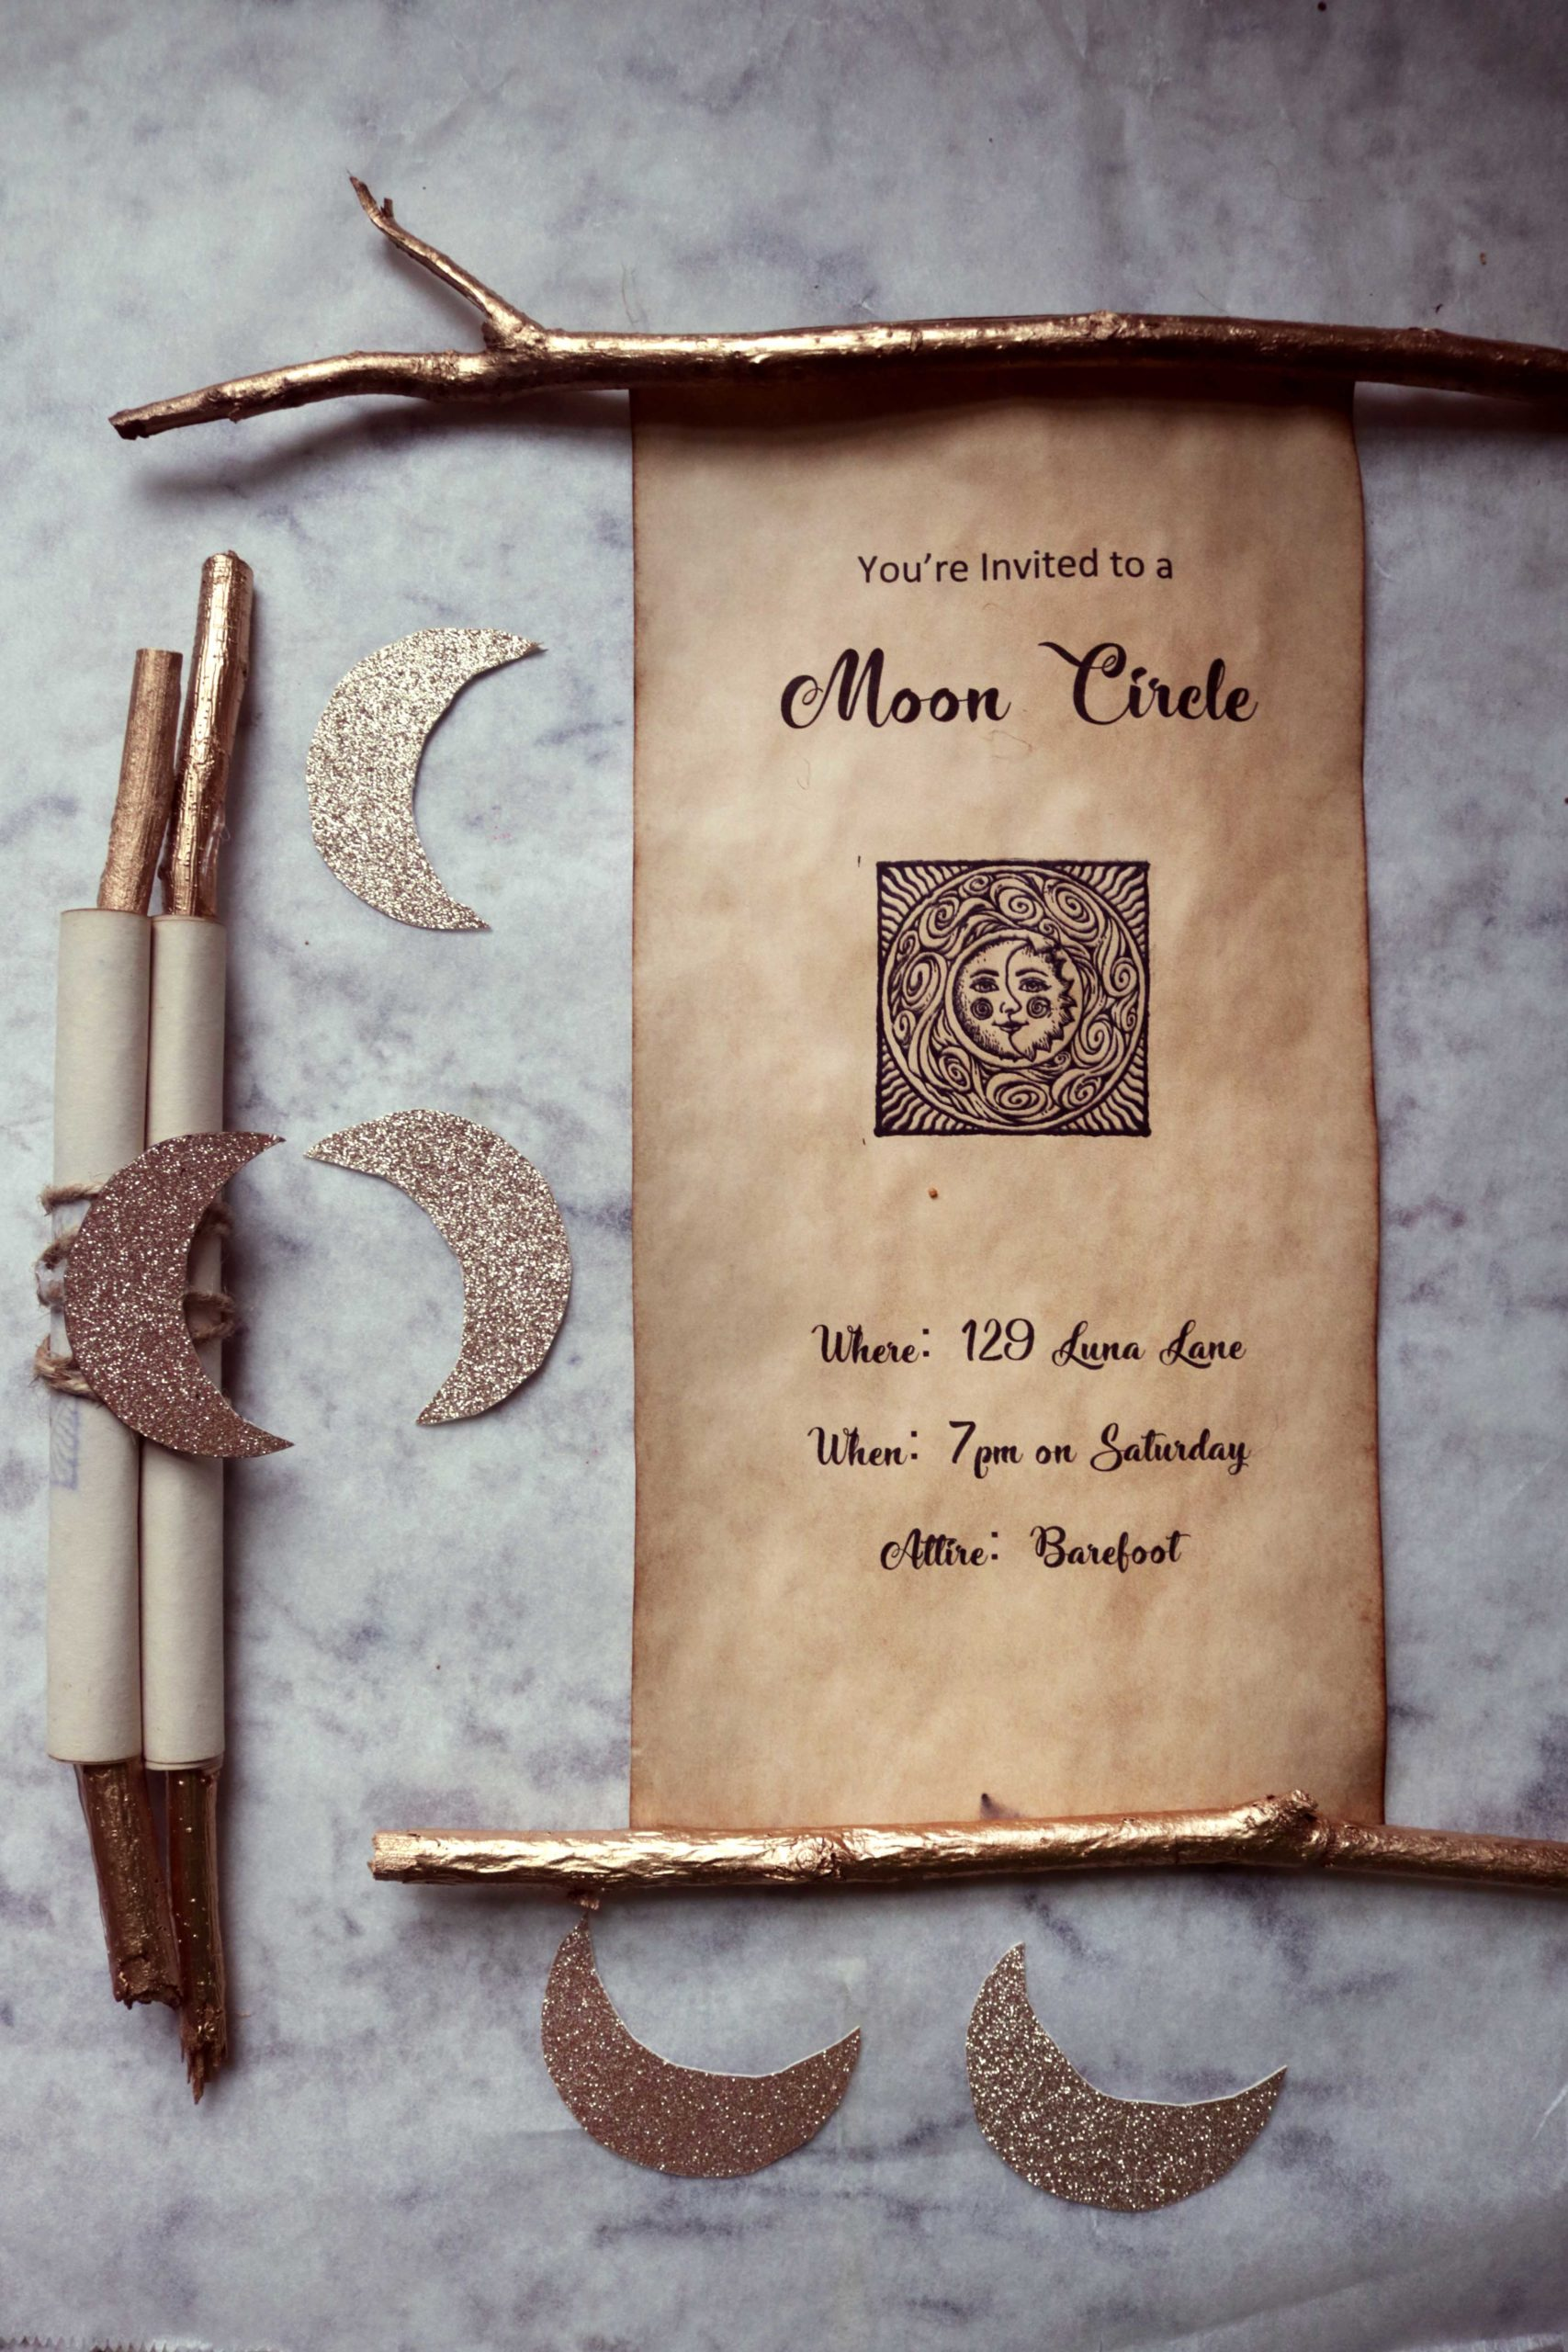 Moon circle spell scroll invitations for a full moon party, esbat or women's moon circle.